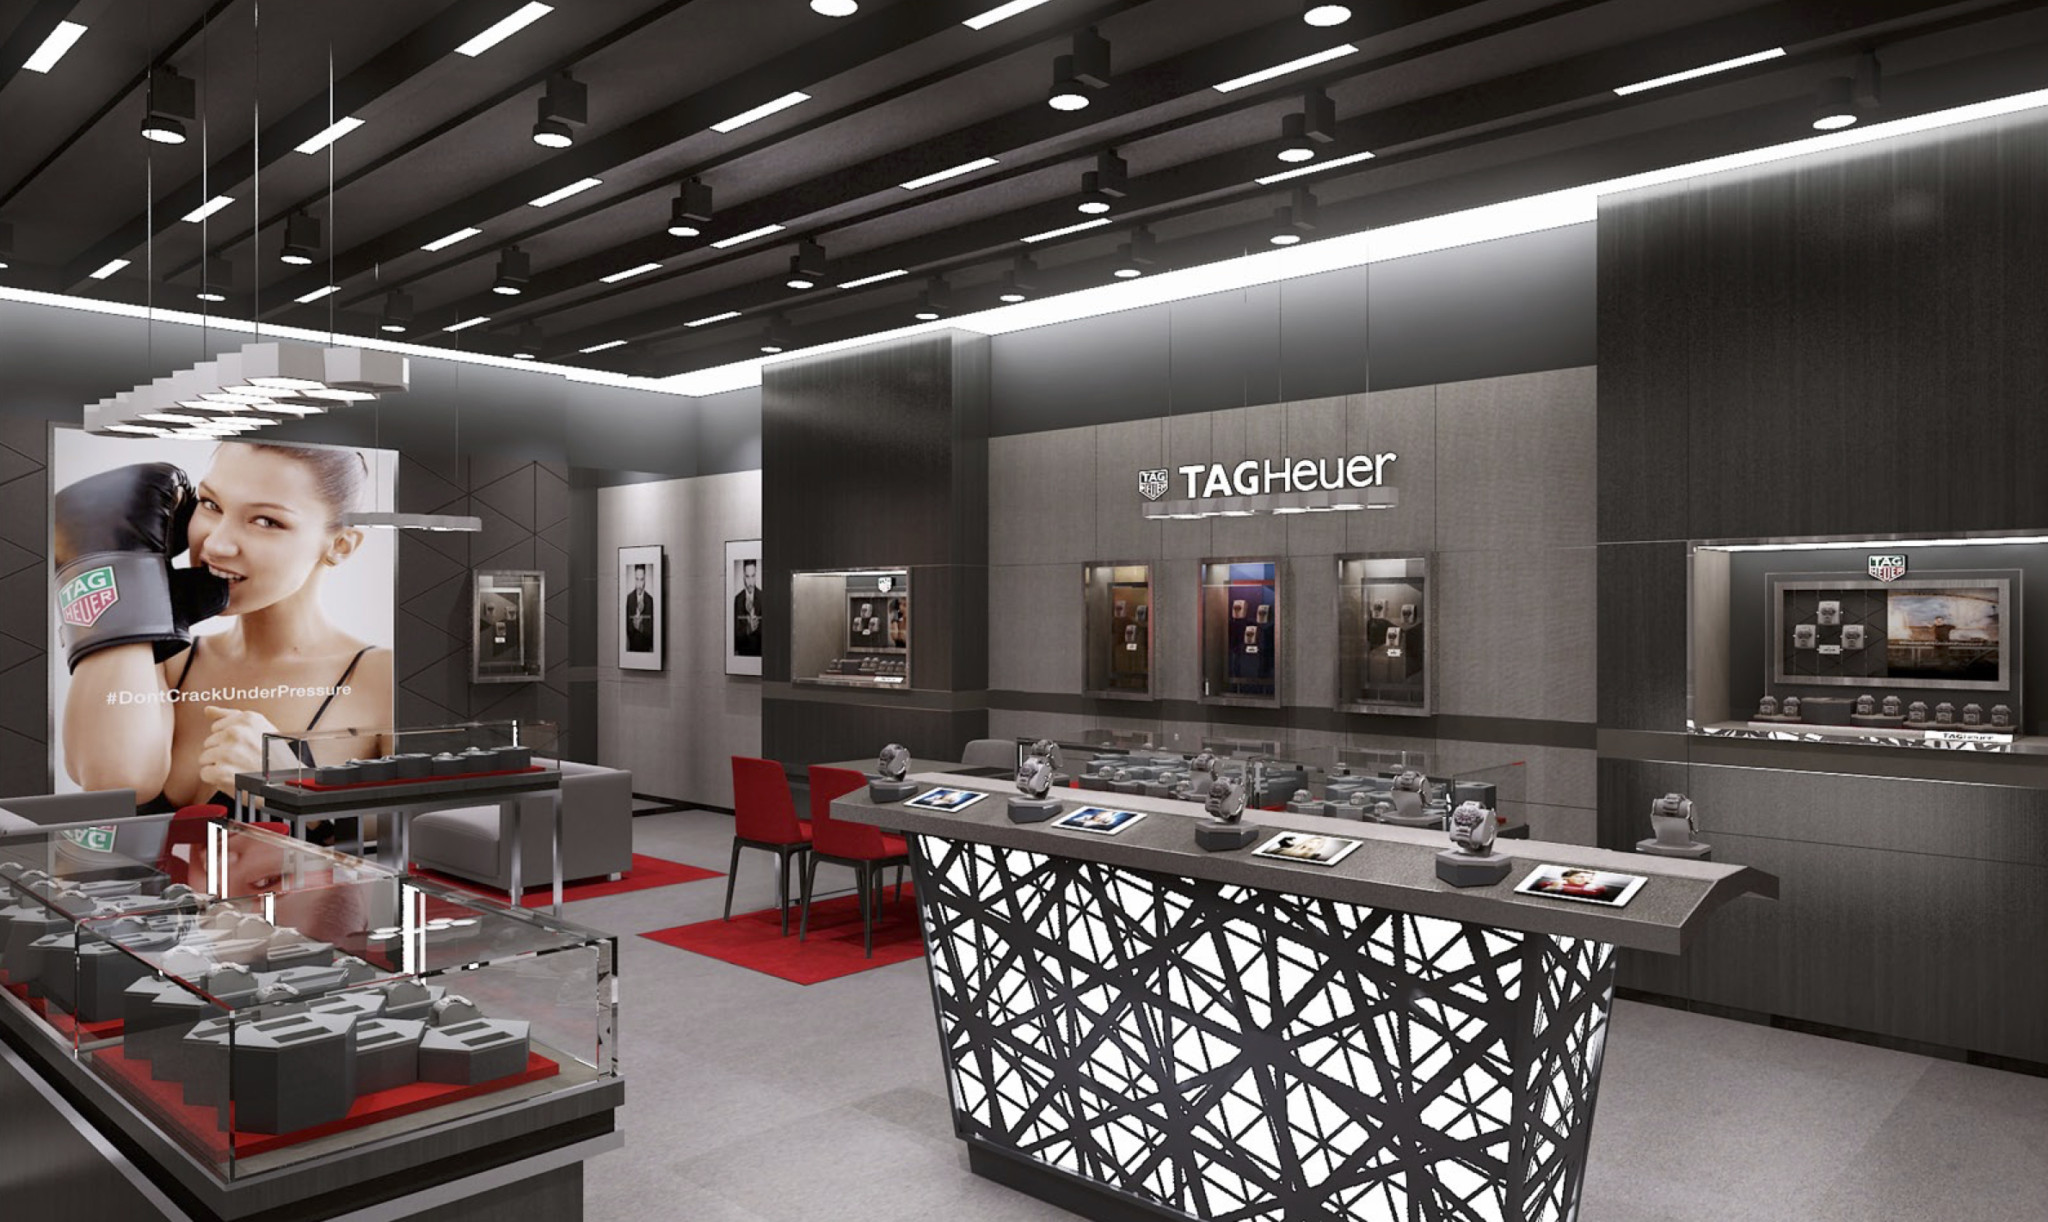 Aurum Holdings opened a monobrand TAG Heuer boutique in Sheffield's Meadowhall shopping centre this year.